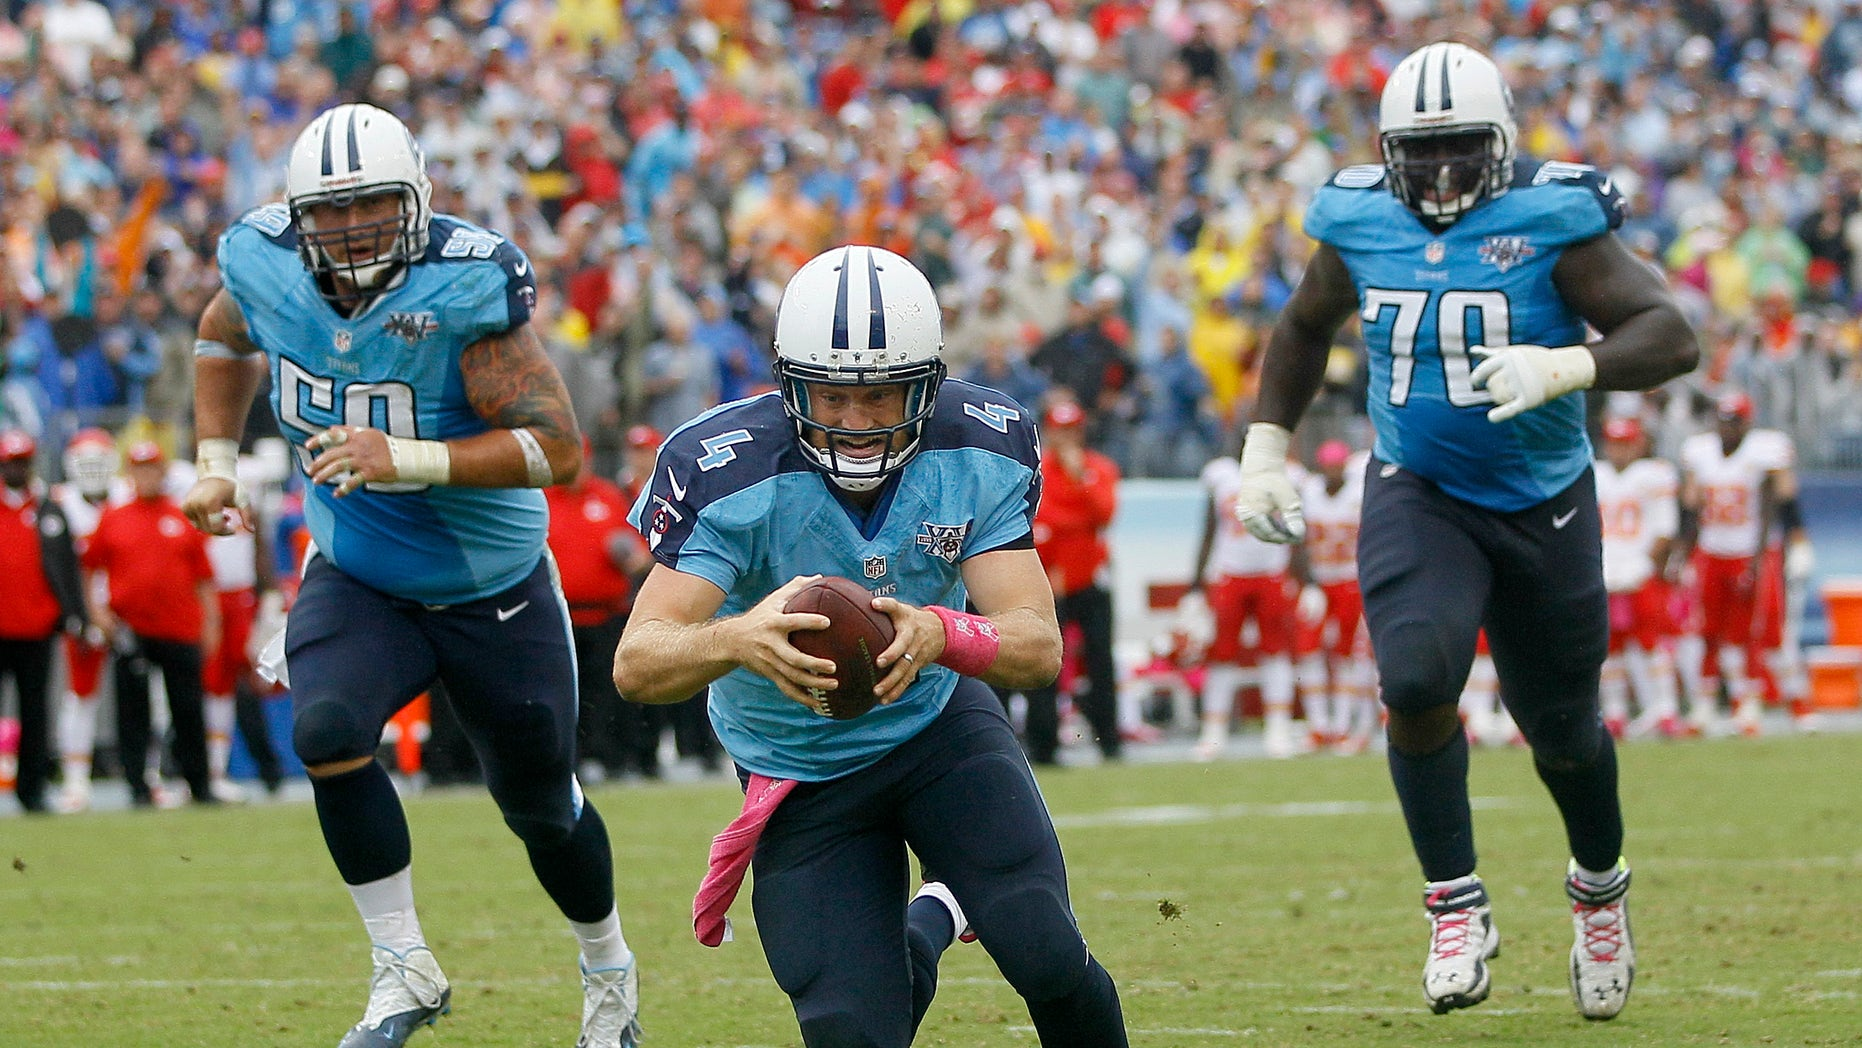 Tennessee Titans quarterback Ryan Fitzpatrick (4) dives into the end zone to score a touchdown on a 9-yard run against the Kansas City Chiefs in the fourth quarter of an NFL football game on Sunday, Oct. 6, 2013, in Nashville, Tenn. Titans linemen Rob Turner (59) and Chance Warmack (70) follow Fitzpatrick. (AP Photo/Wade Payne)